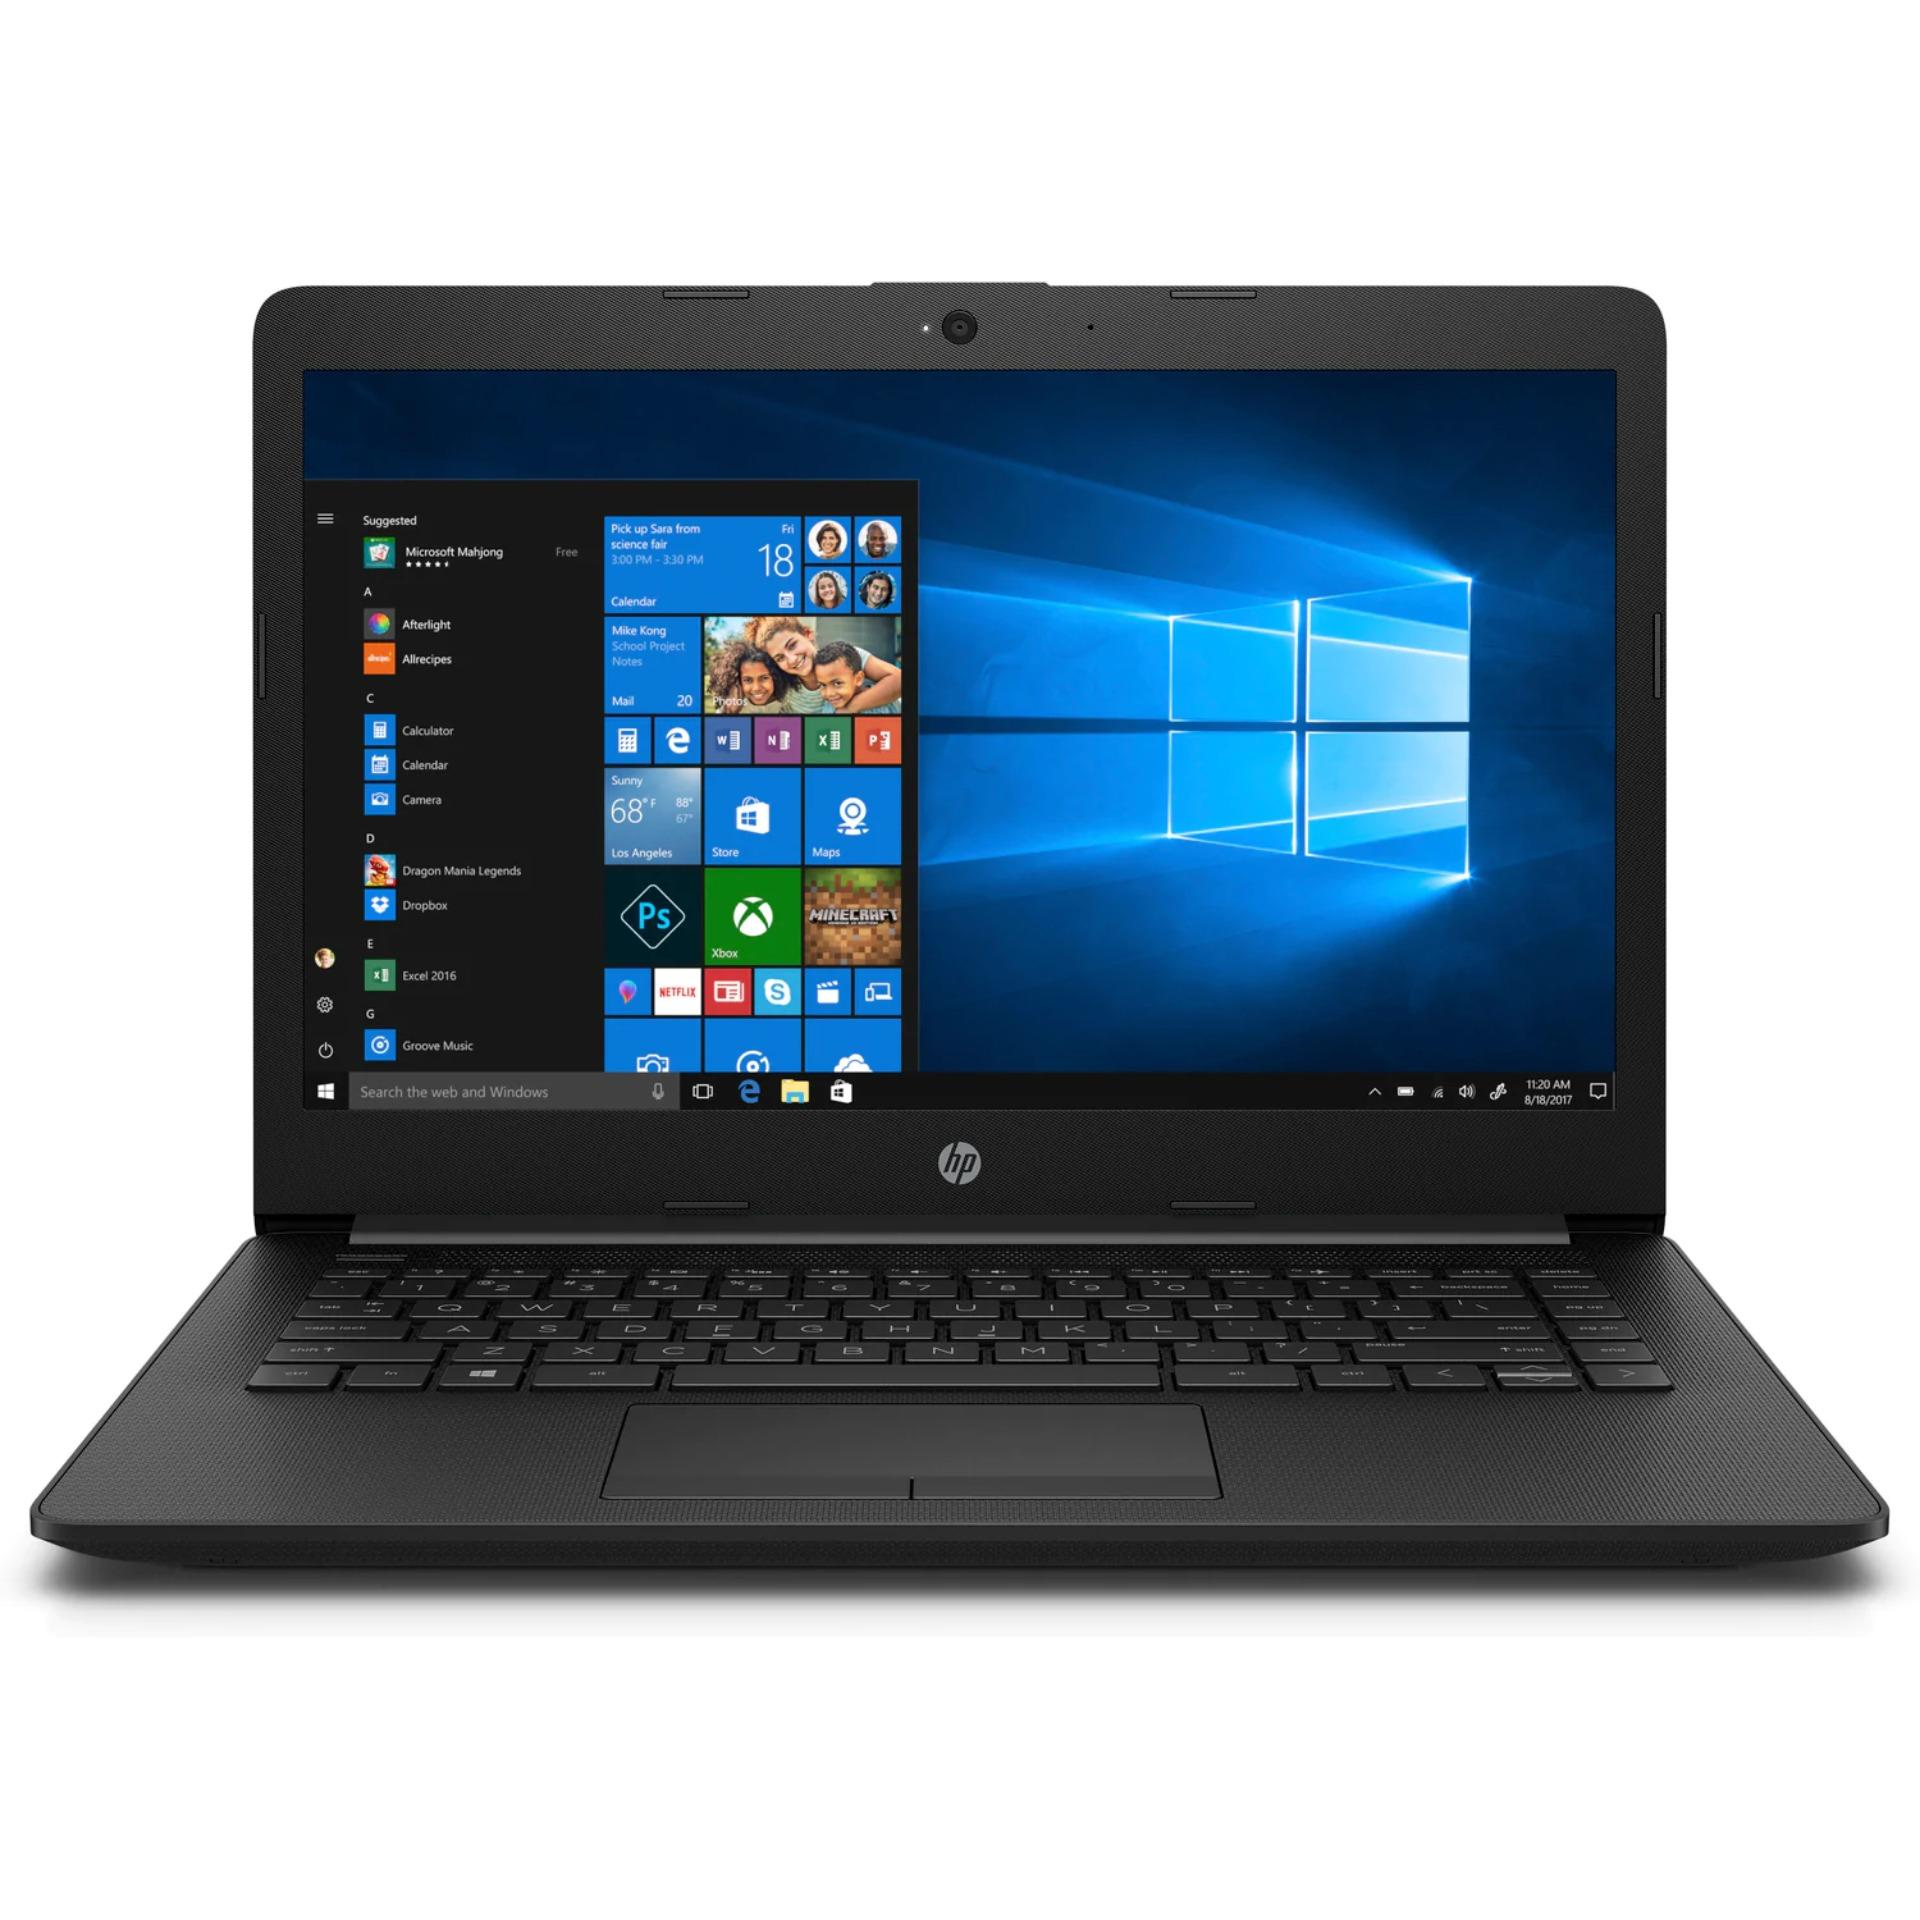 HP Notebook - 14-ck0025tu